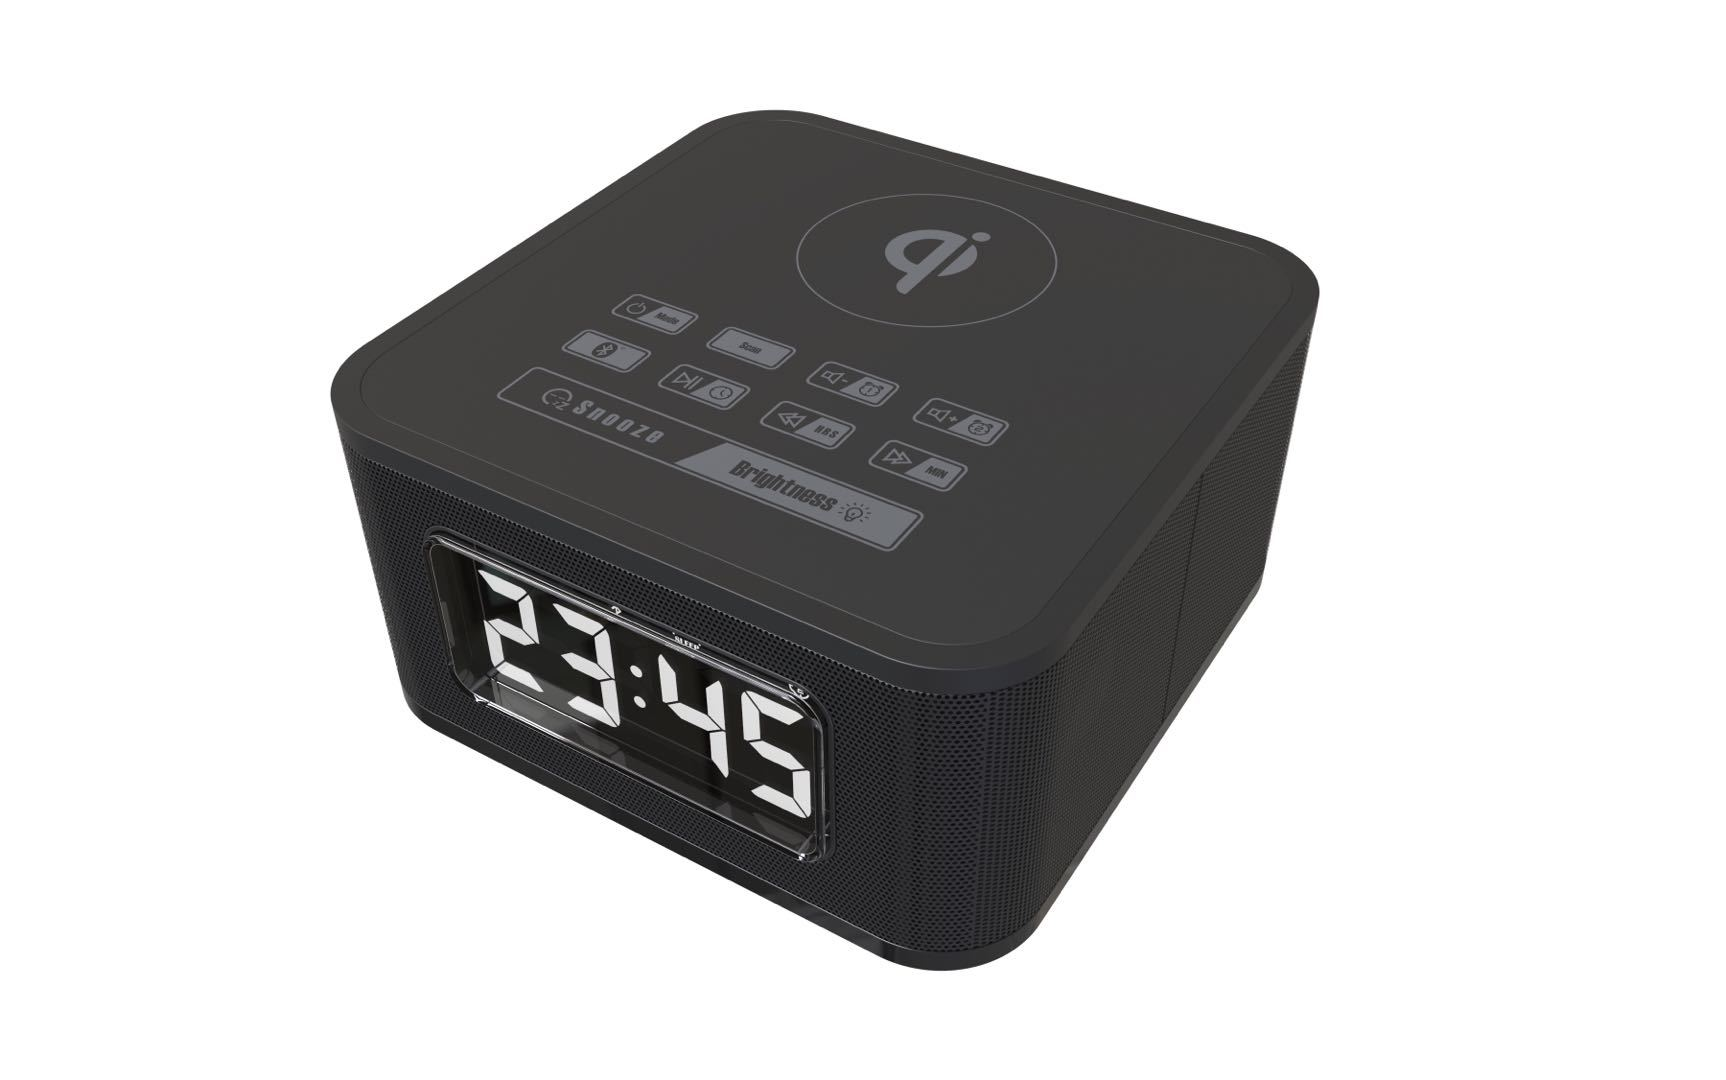 CLOCK RADIO WITH BLUETOOTH AND QI CHARGING